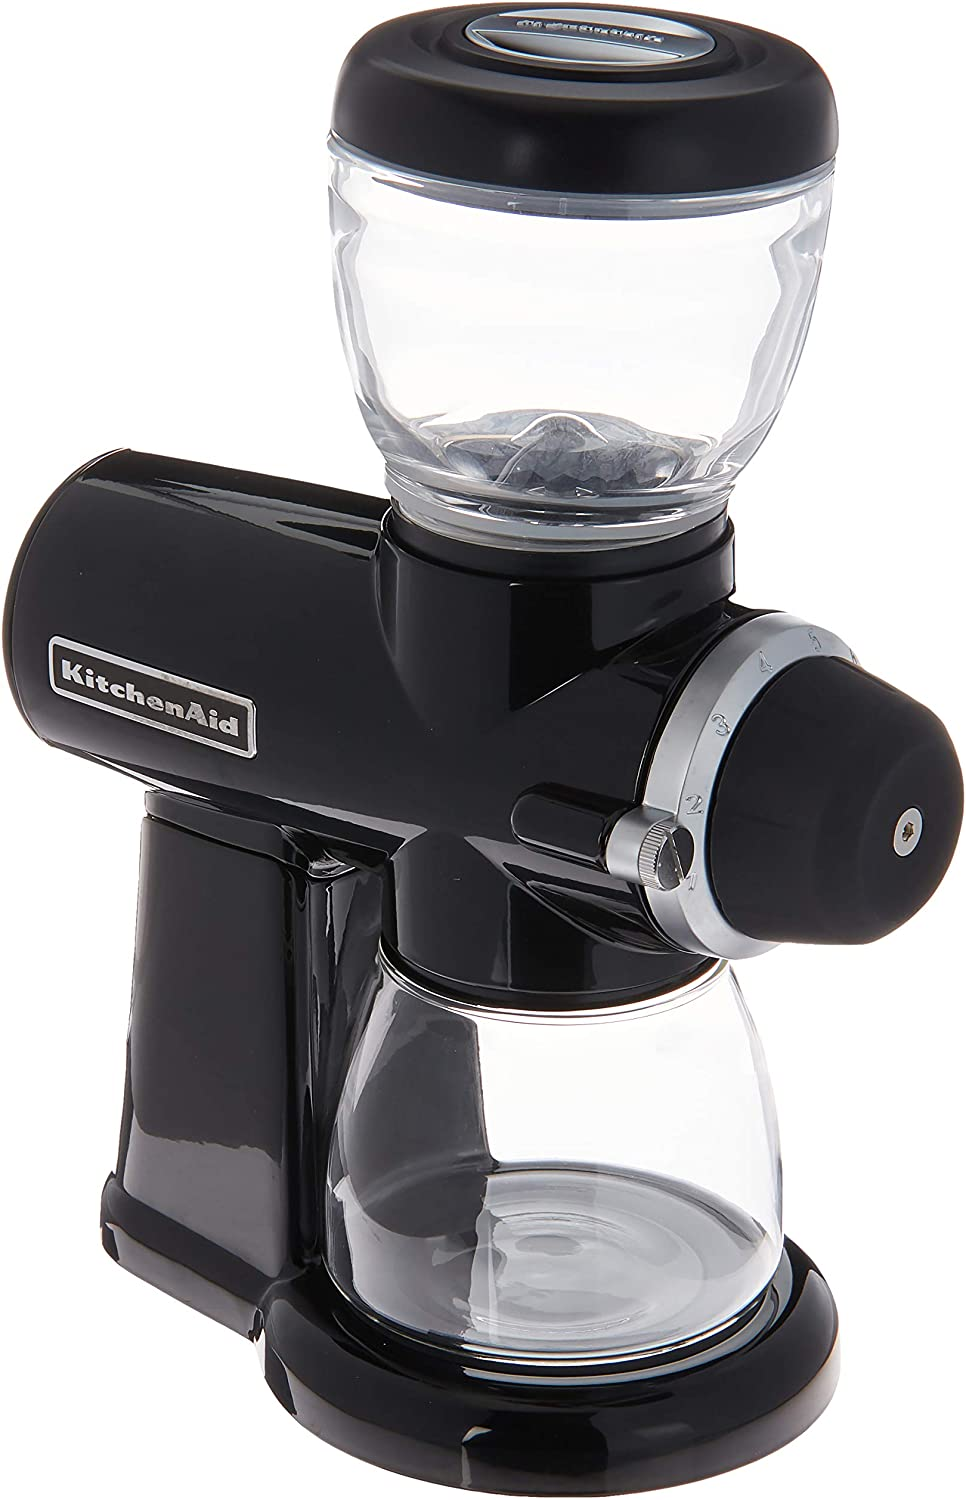 Amazon.com: Molinillo de café, de la marca KitchenAid ...